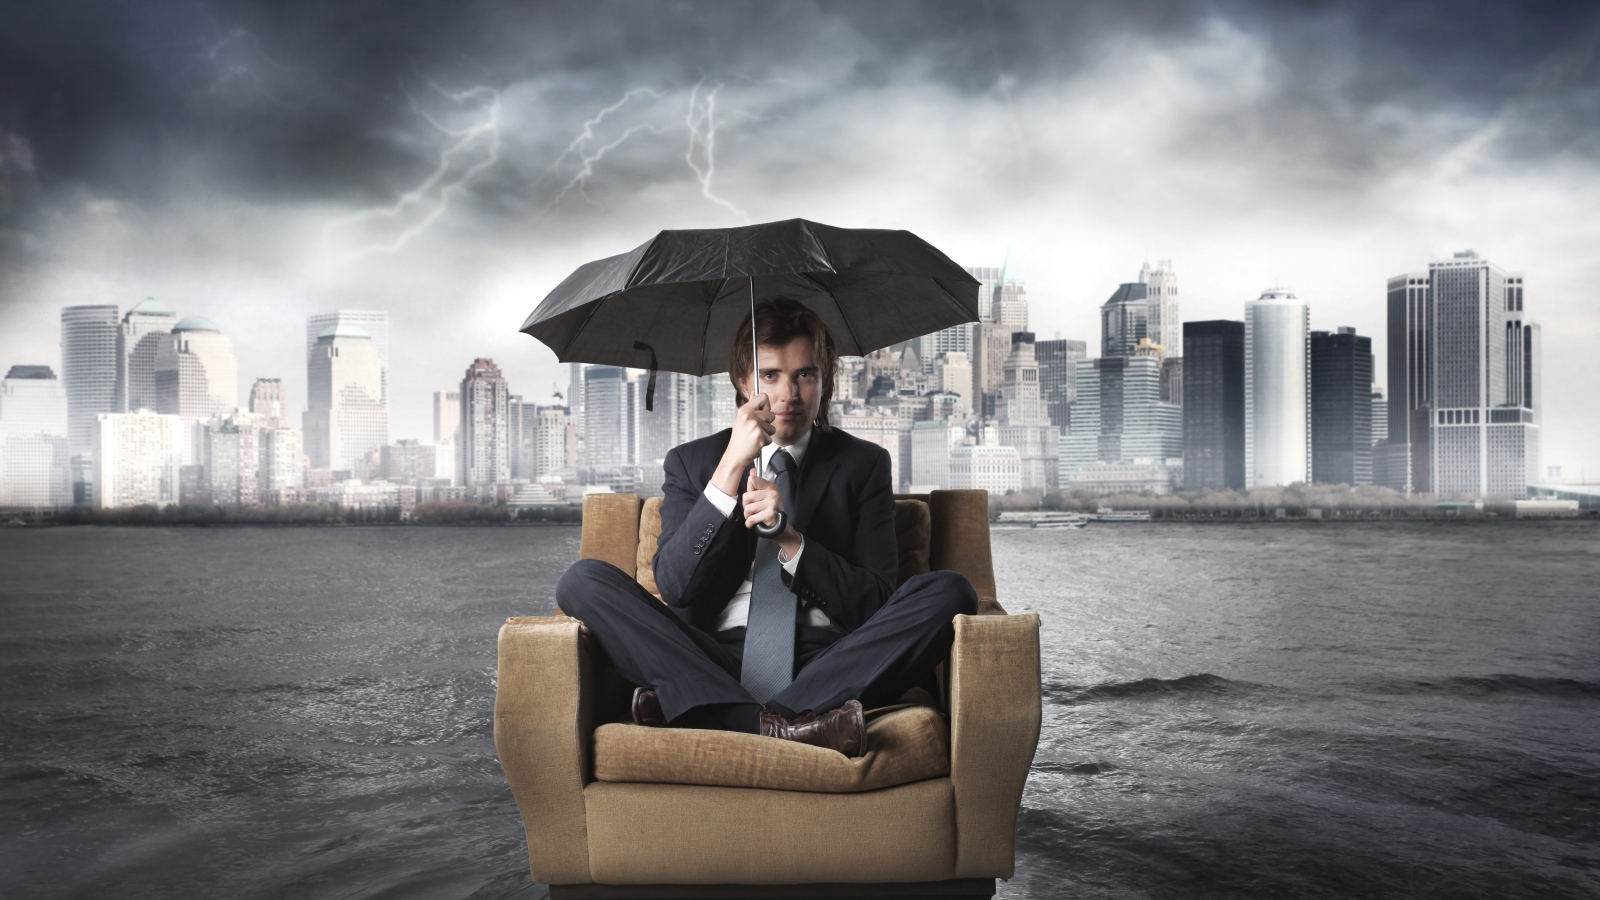 businessman_chair_flood_umbrella_river_storm_city_79817_1600x900